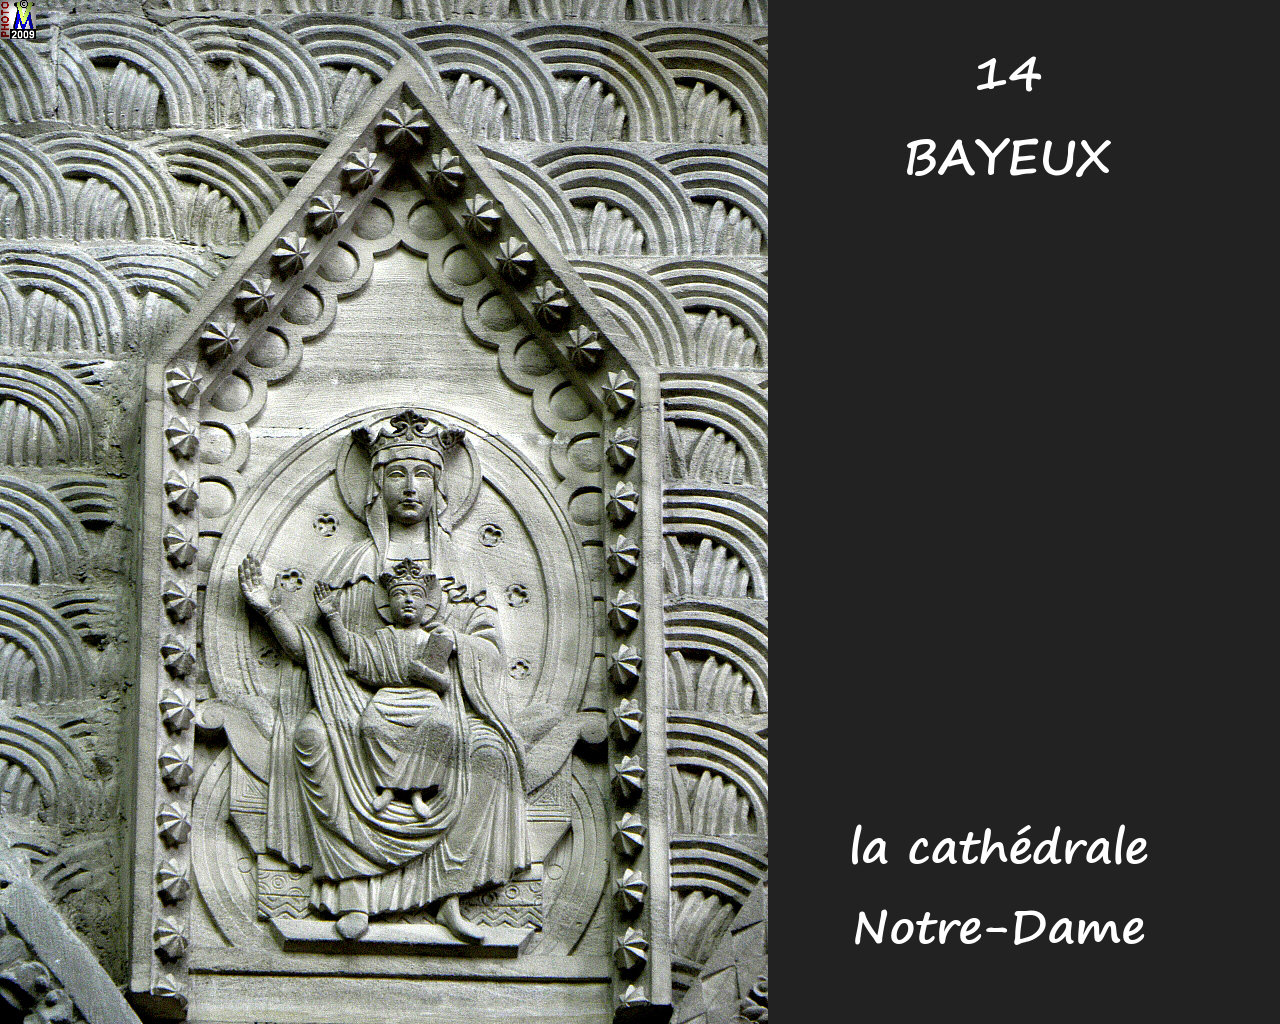 14BAYEUX_cathedrale_212.jpg